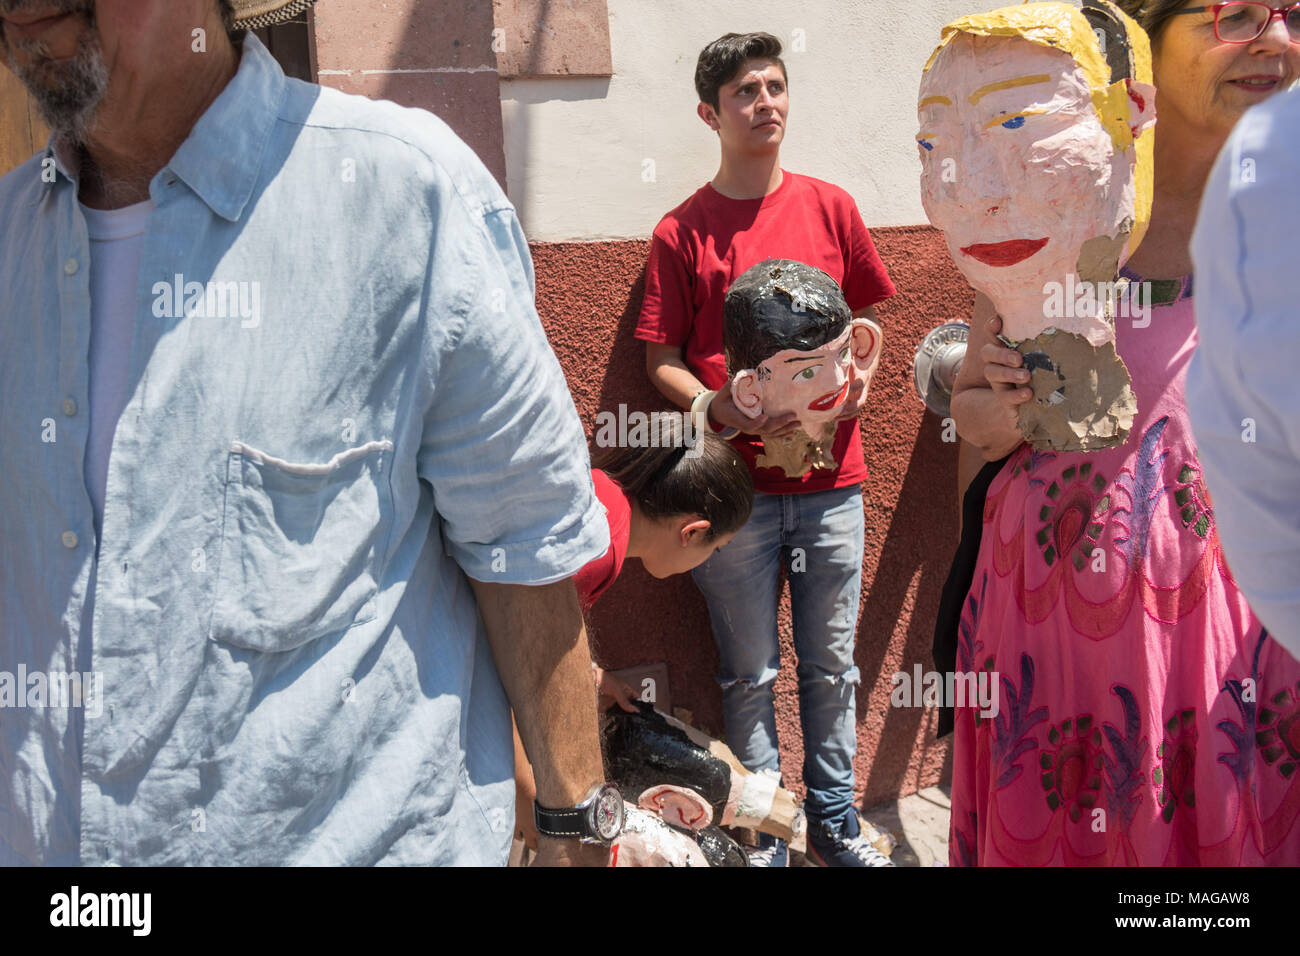 People walk away with the head of an effigy of U.S. President Donald Trump after it was exploded during the Burning of Judas Easter-time ritual marking the end of Holy Week April 1, 2018 in San Miguel de Allende, Mexico. While the tradition includes burning a paper effigy of Judas a recent popular addition has been paper doll caricatures of Donald Trump across Mexico. - Stock Image